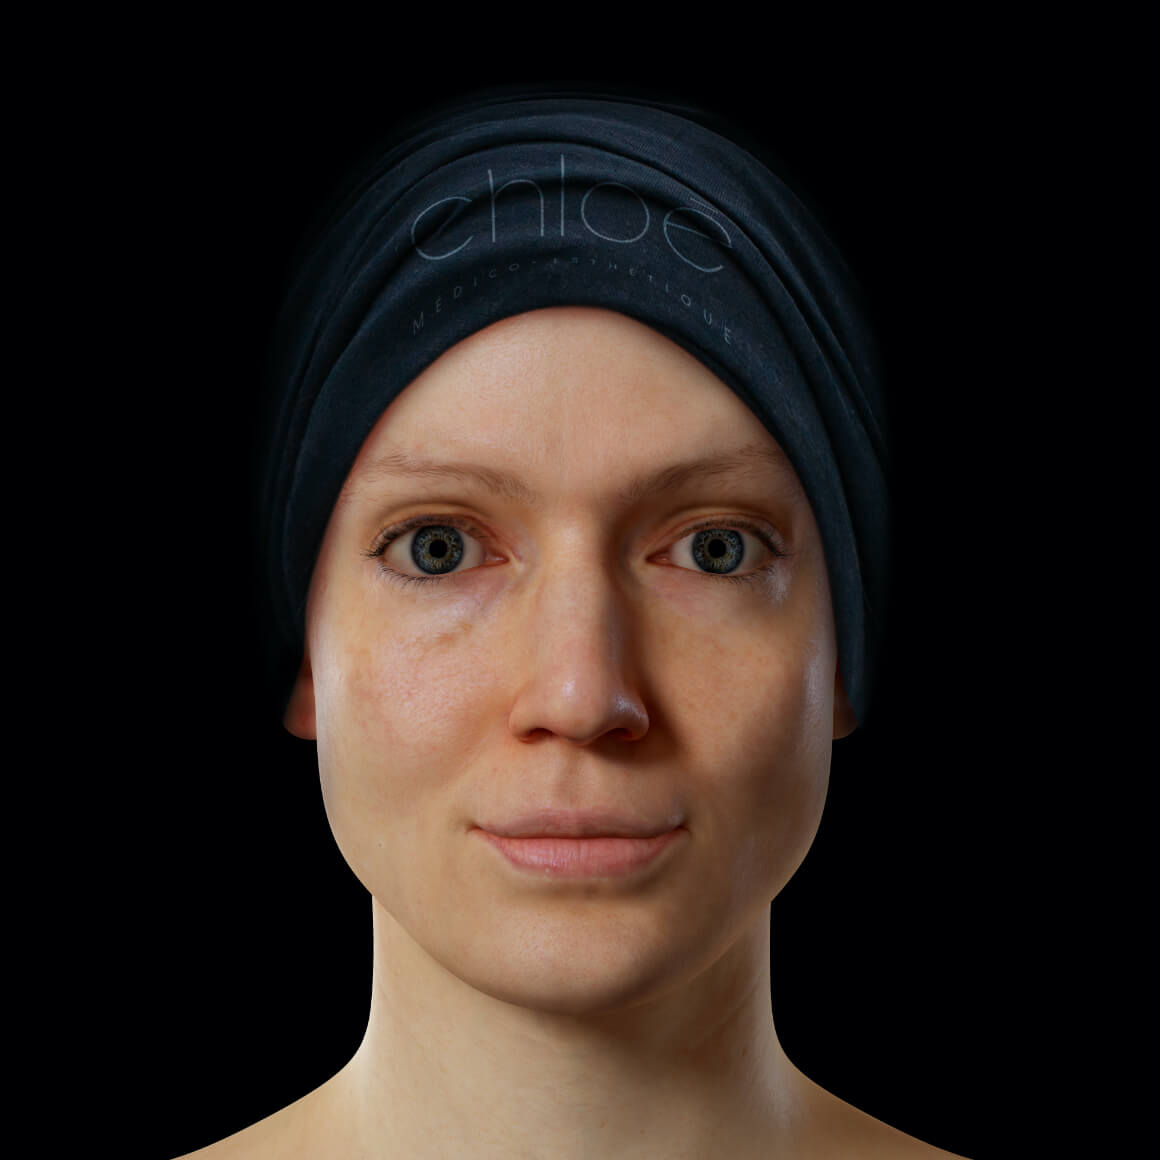 A Clinique Chloé female patient facing front after fractional laser treatments to get rid of dilated pores